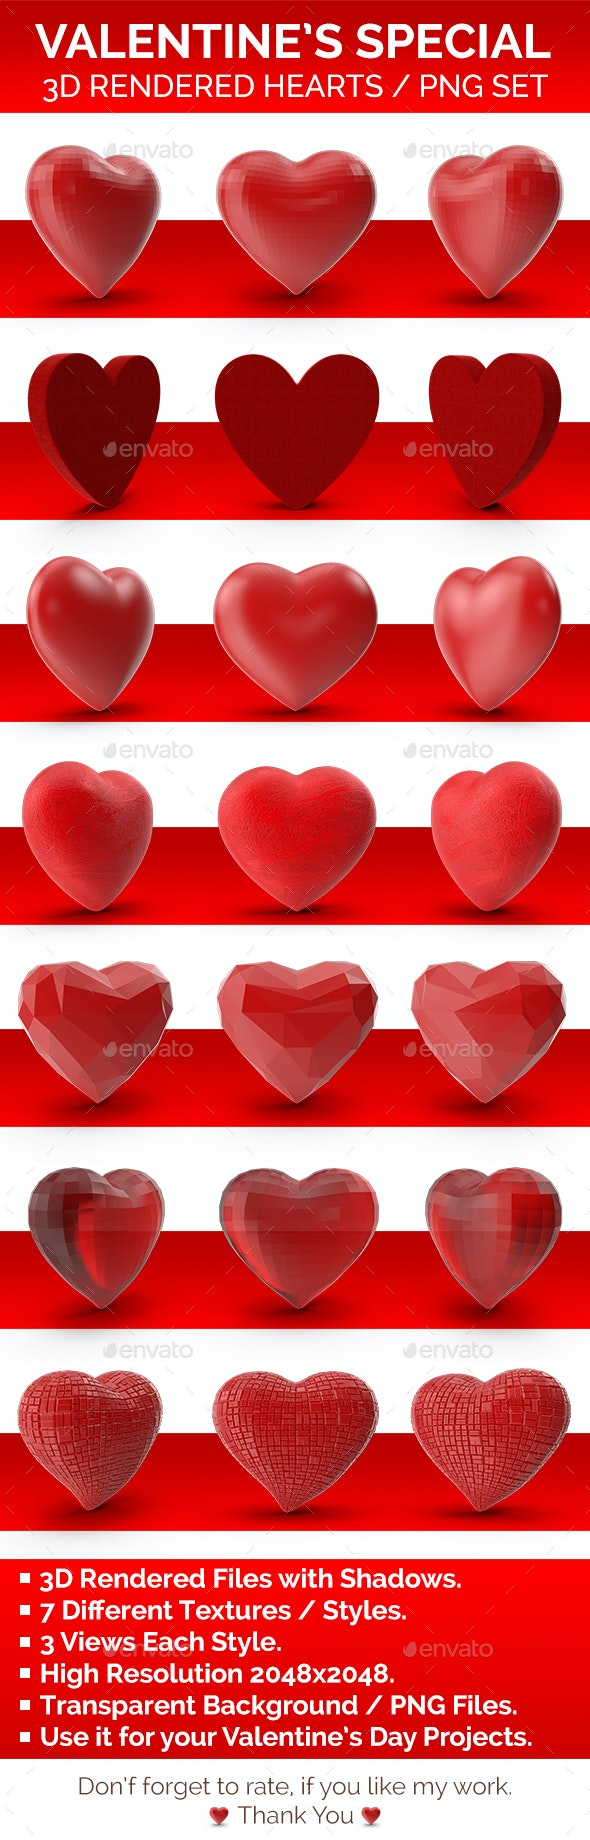 Valentine's Special Hearts PNG Set 3D Rendered with Shadows - 3D Backgrounds